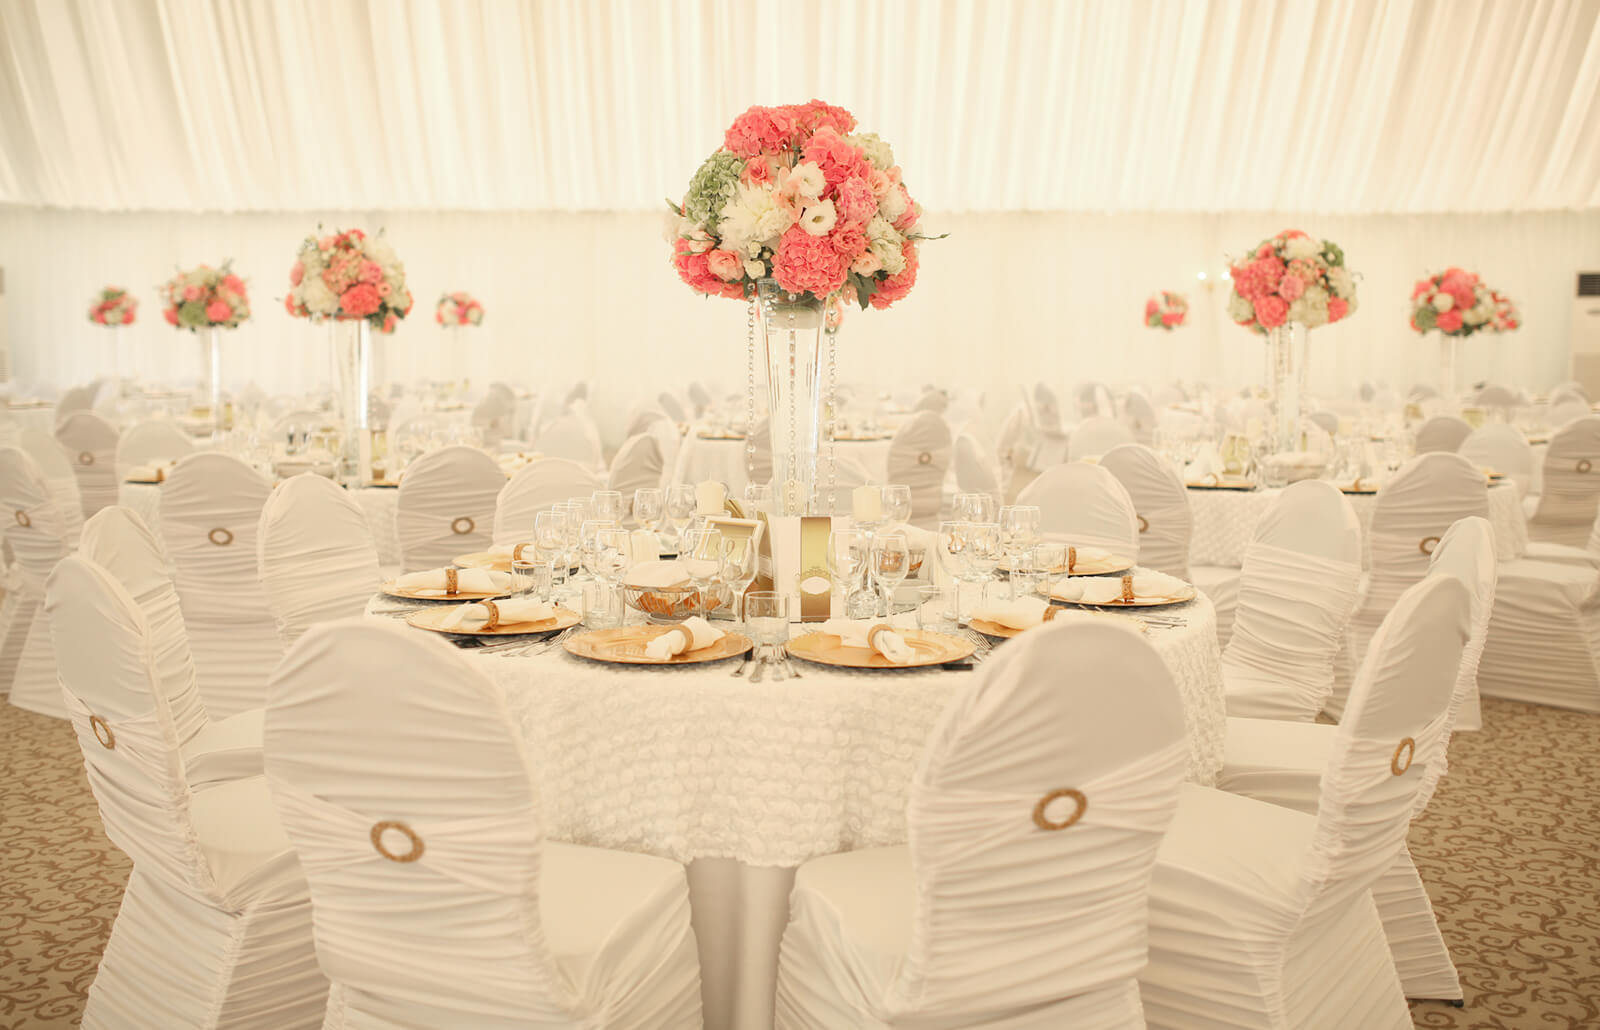 Simple Table Decorating Ideas for Wedding Receptions | LoveToKnow